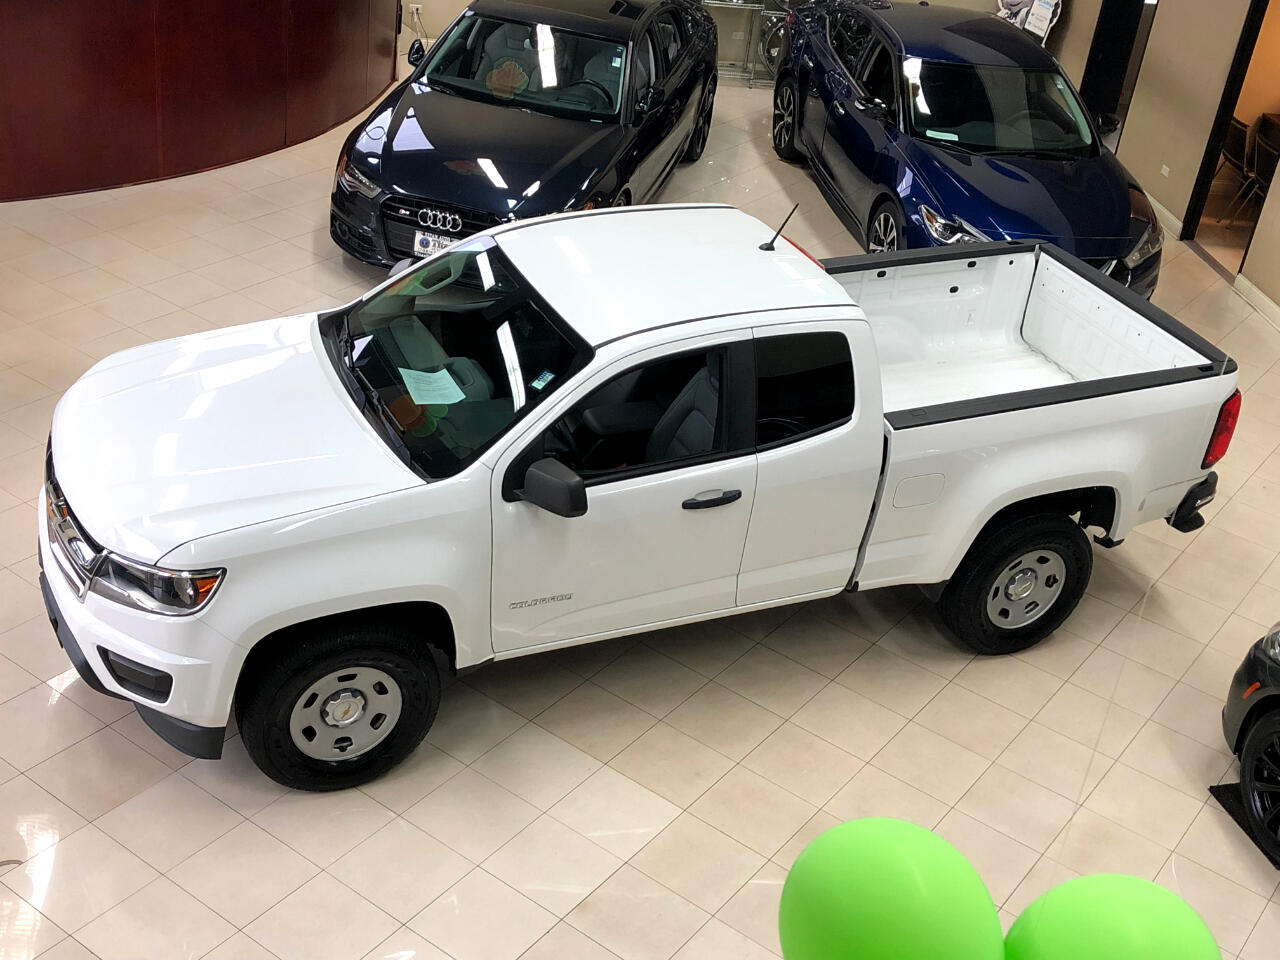 2015 Chevrolet Colorado 2WD Ext Cab 128.3